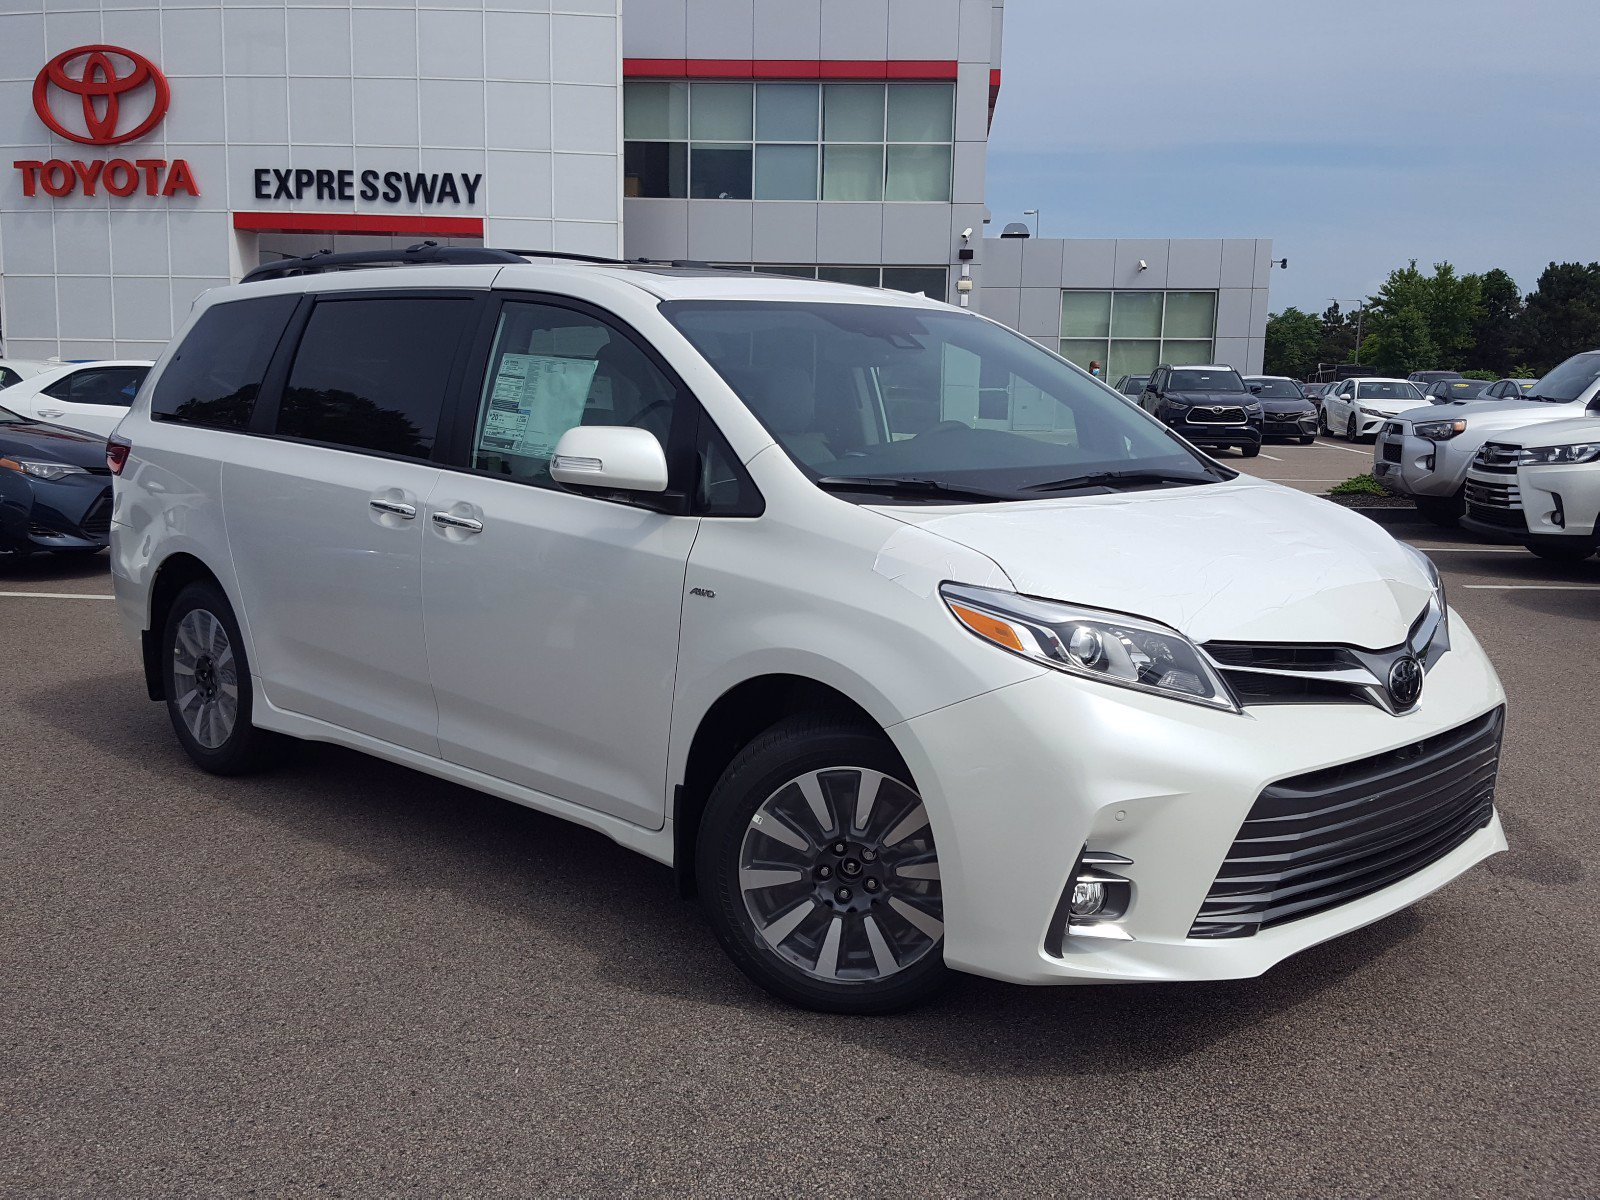 new 2020 toyota sienna limited premium mini van passenger for sale in boston ma expressway toyota new 2020 toyota sienna limited premium